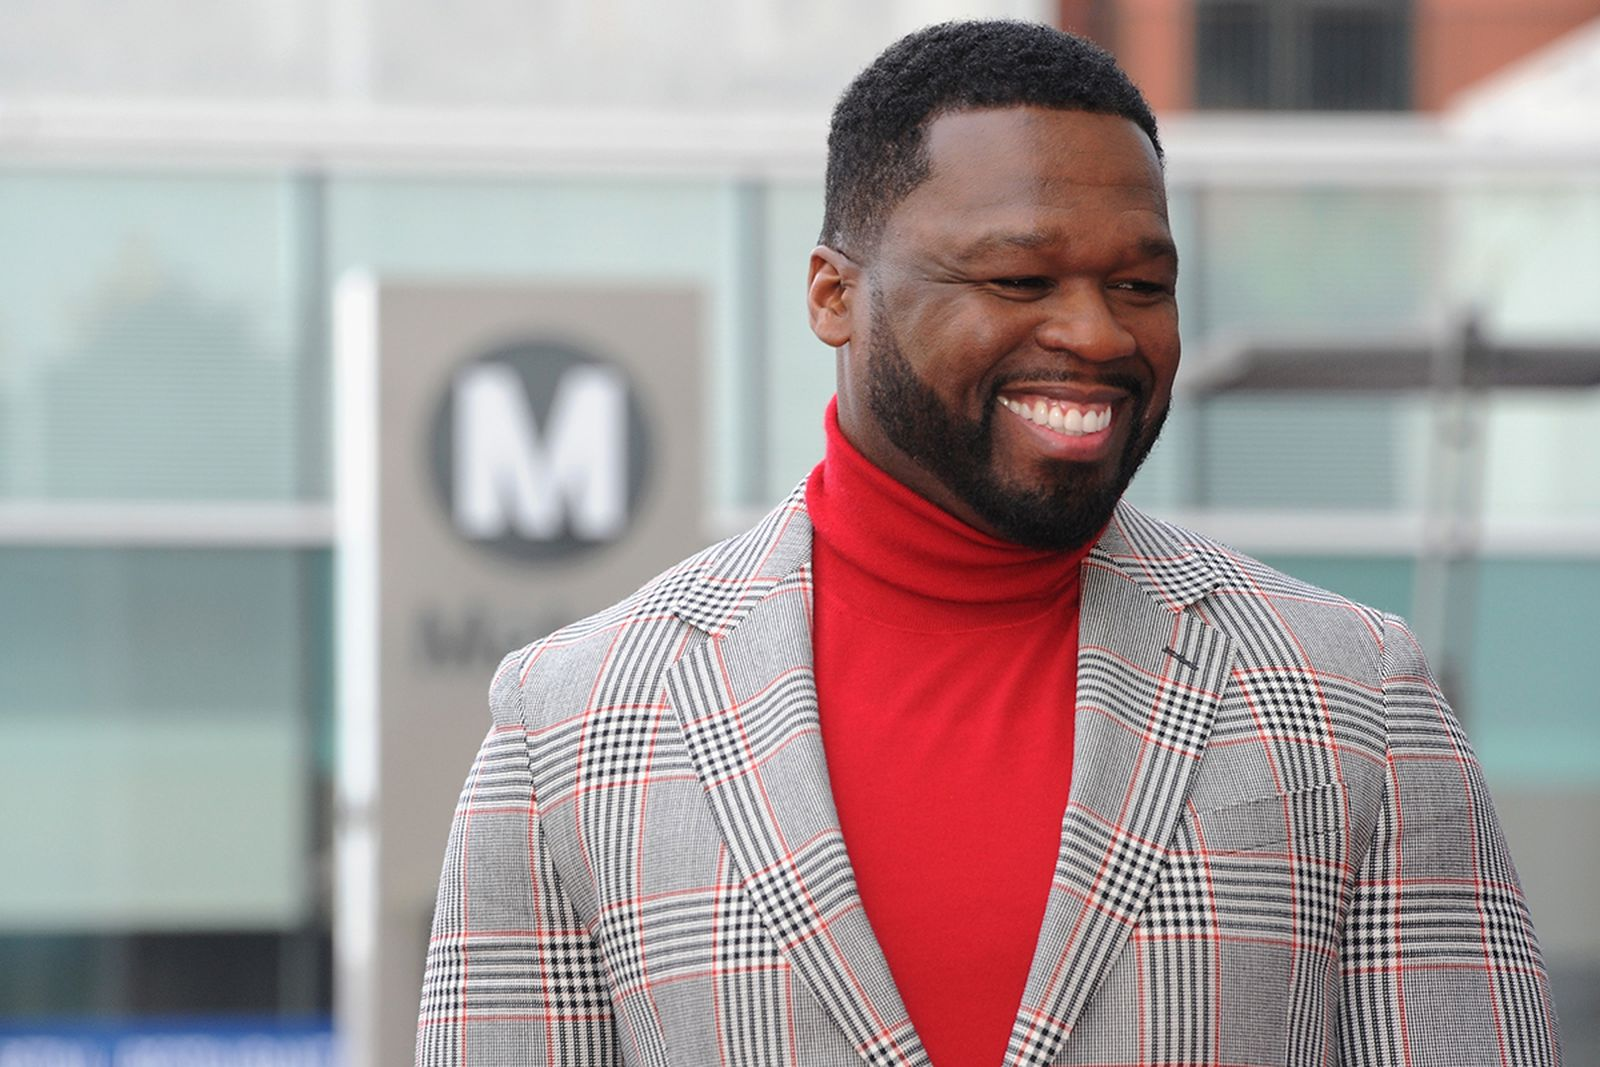 50 cent a ceremony honoring him with a star on the Hollywood Walk of Fame